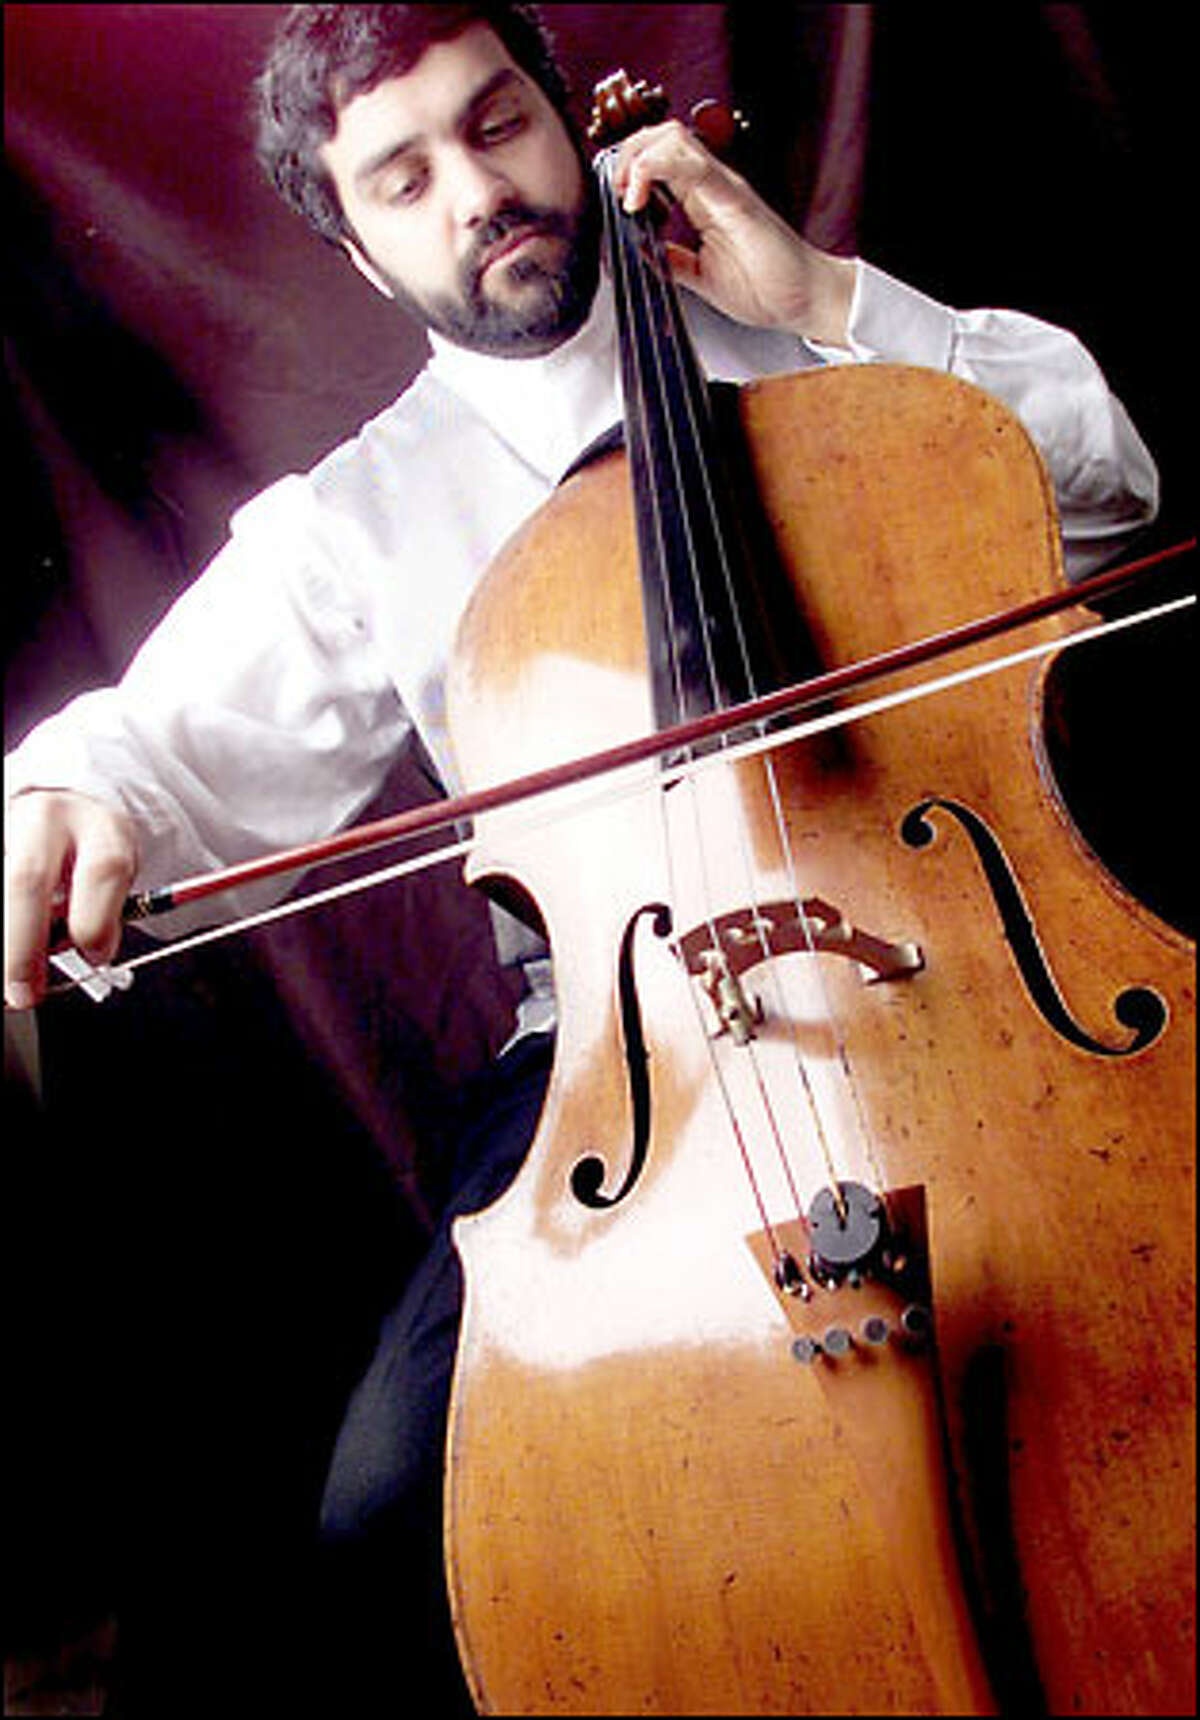 Seattle musician Rajan Krishnaswami draws his bow across his prized cello, a Guadagnini built in Turin, Italy, in 1780. Krishnaswami says the instrument was recently appraised at $1.1 million.